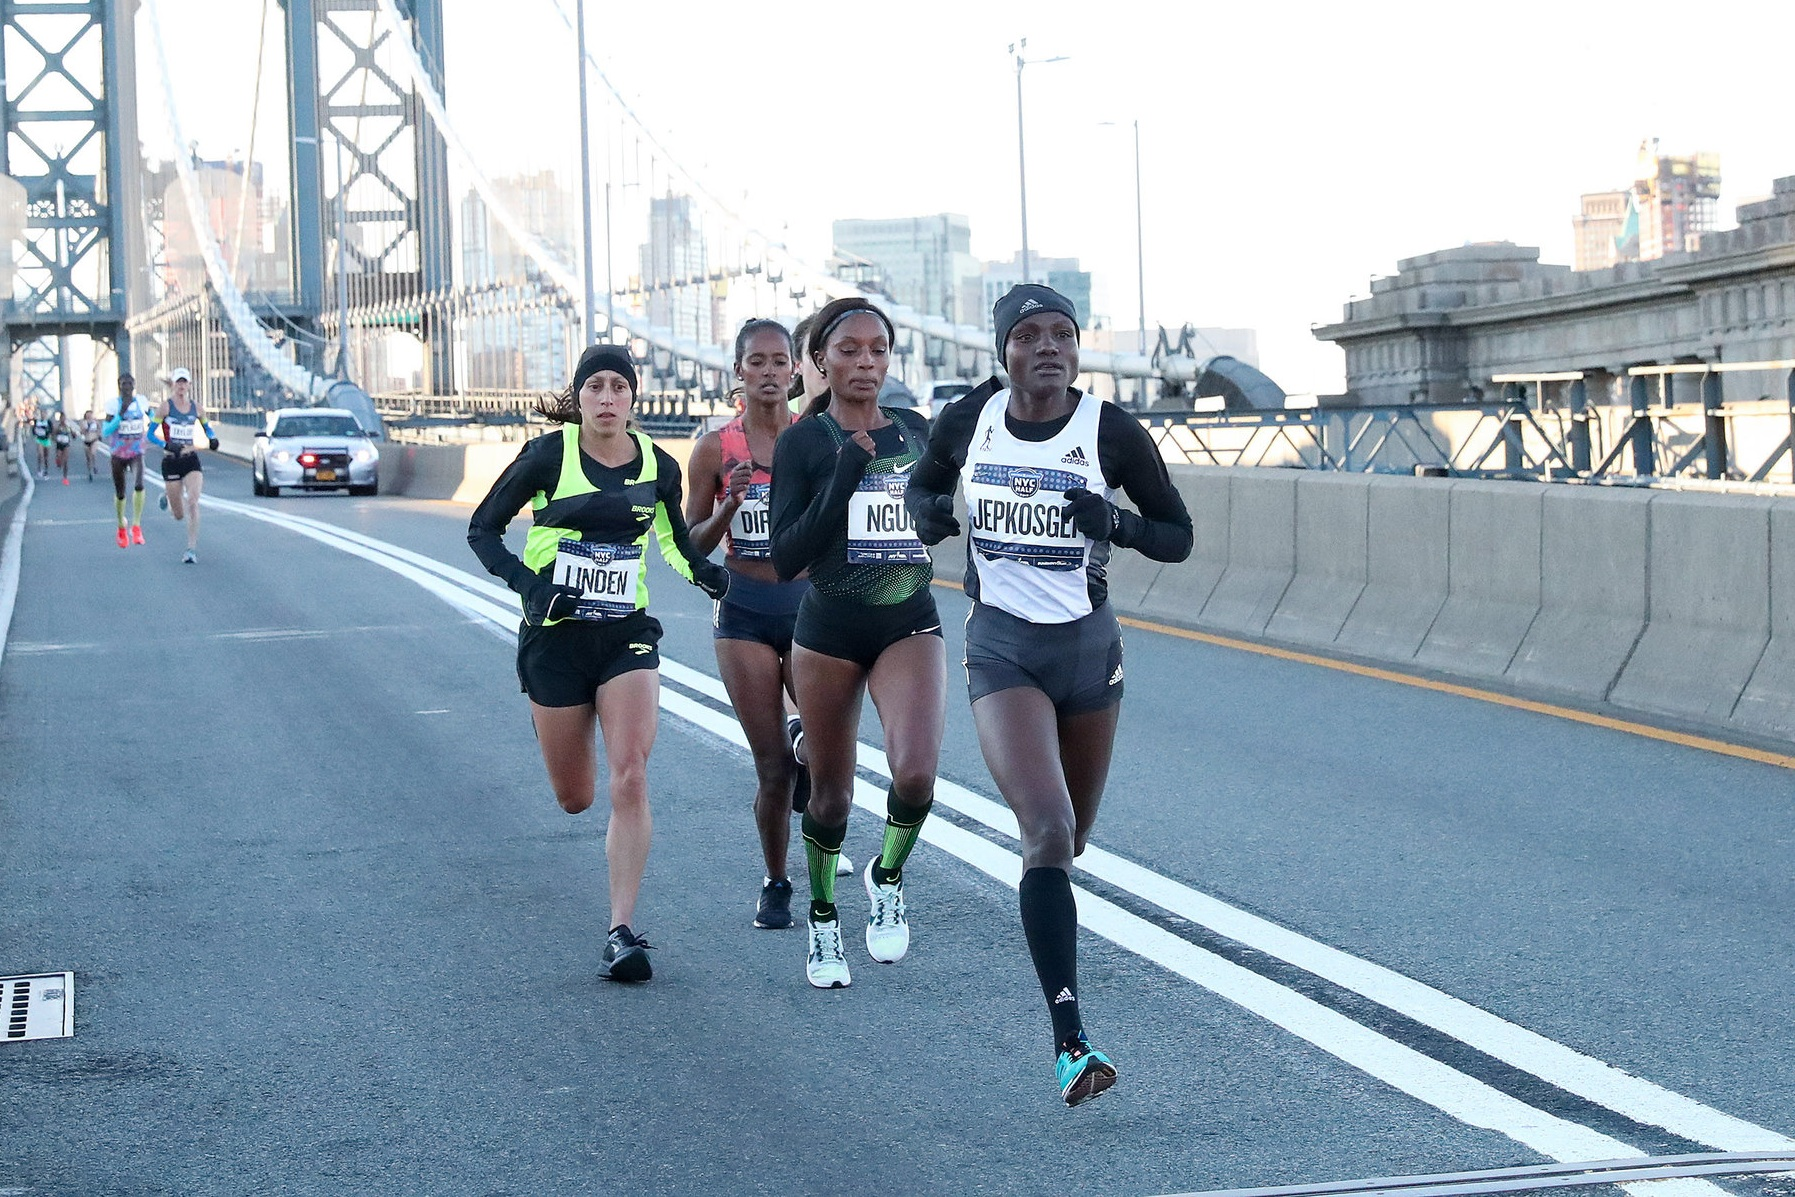 Mary Ngugi, shown here in the lead pack at the 2019 United Airlines NYC Half, knows that she'll once again learn a lot from racing on the streets of NYC.